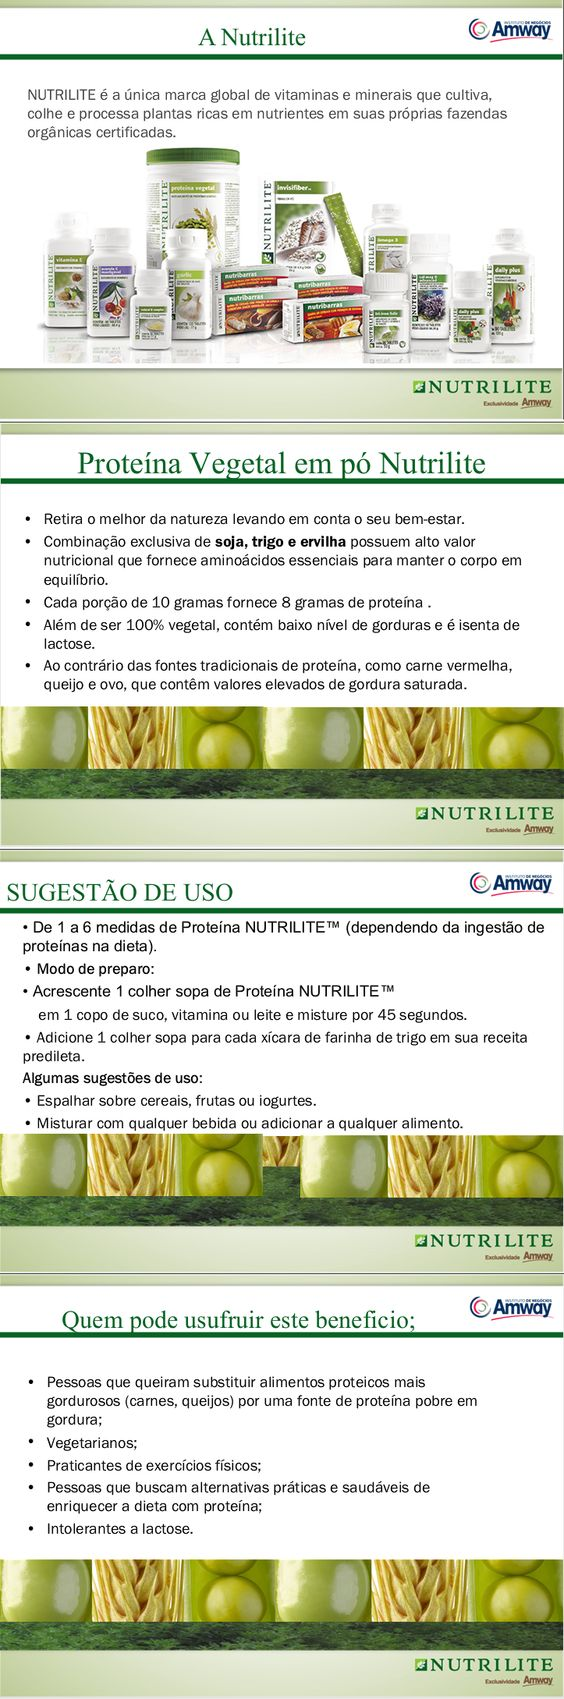 PROTEINA VEGETAL | Nutrilite  http://www.amway.com.br/